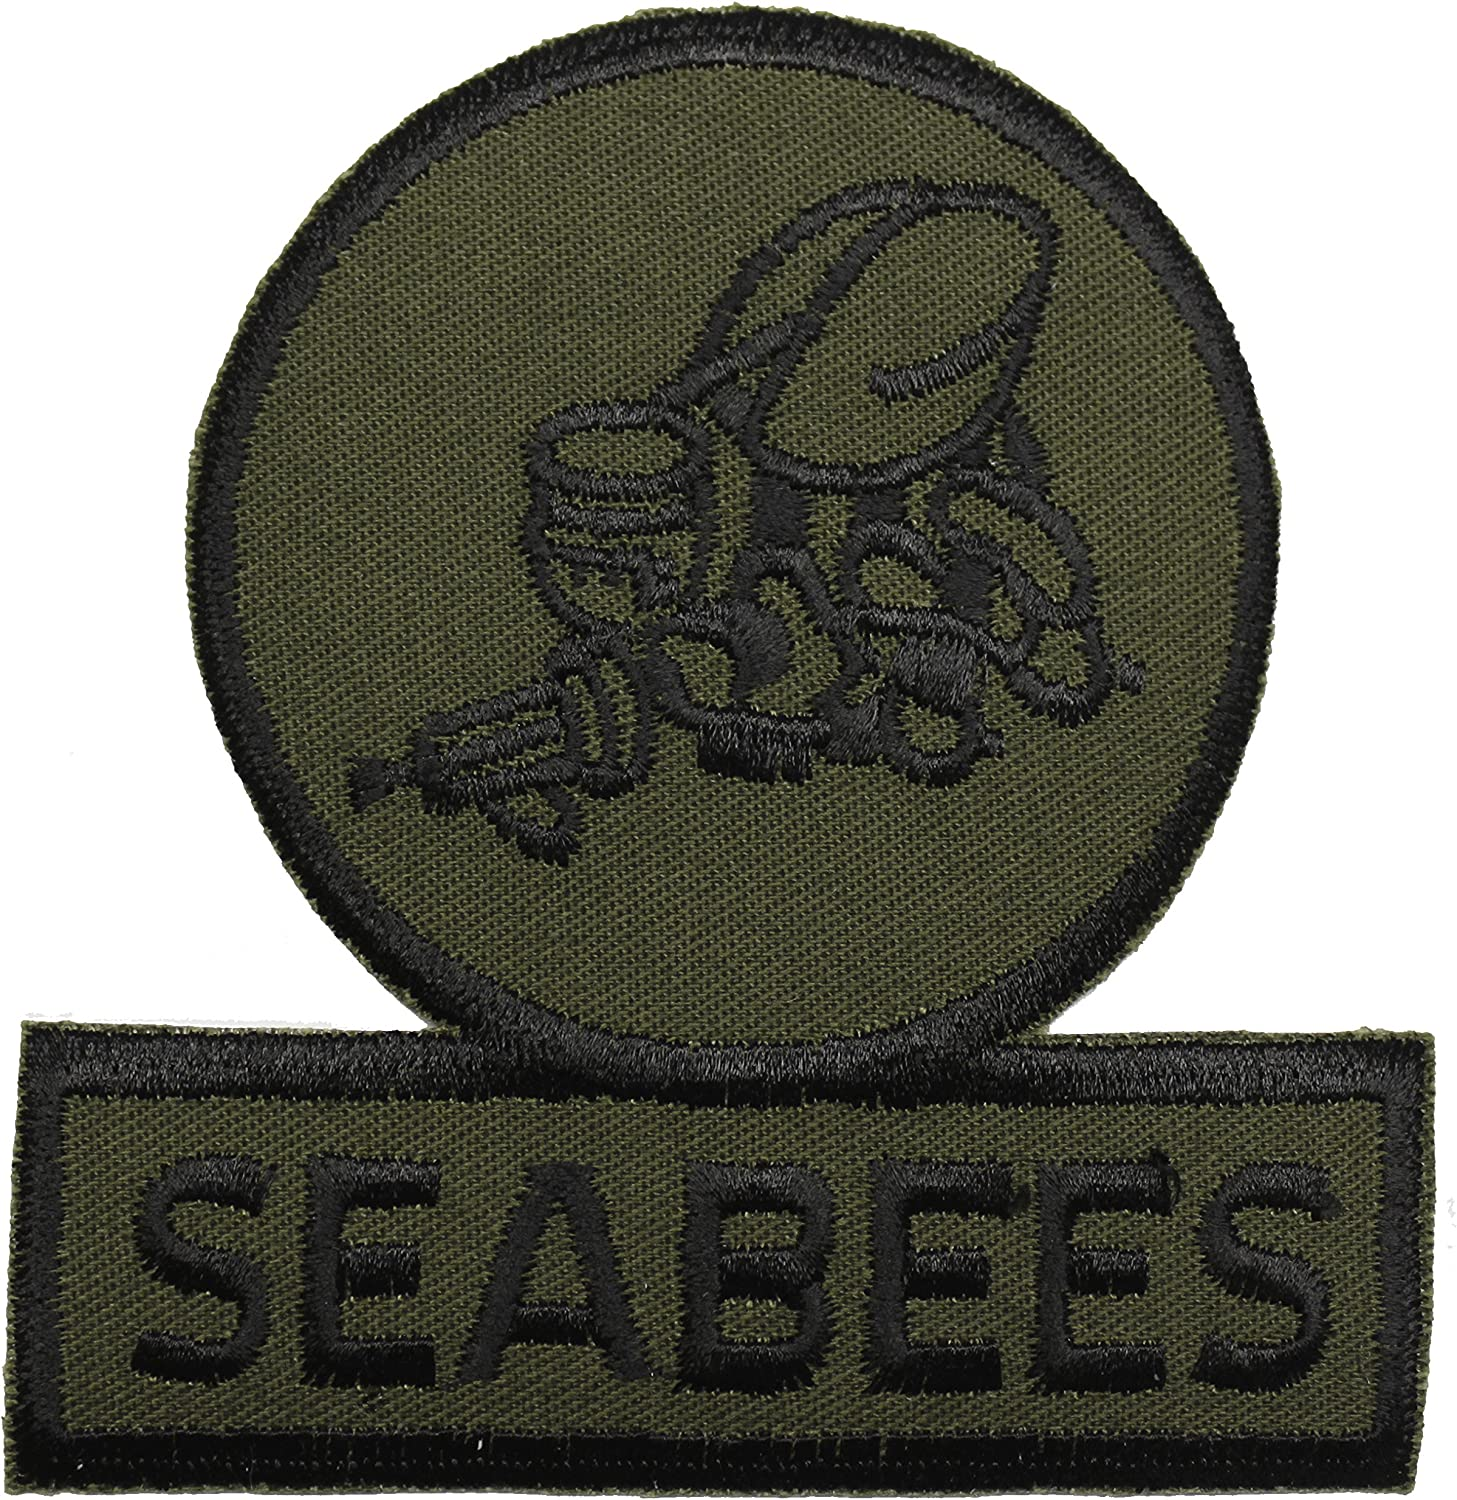 Seabees 5 popular Gorgeous Patch Subdued